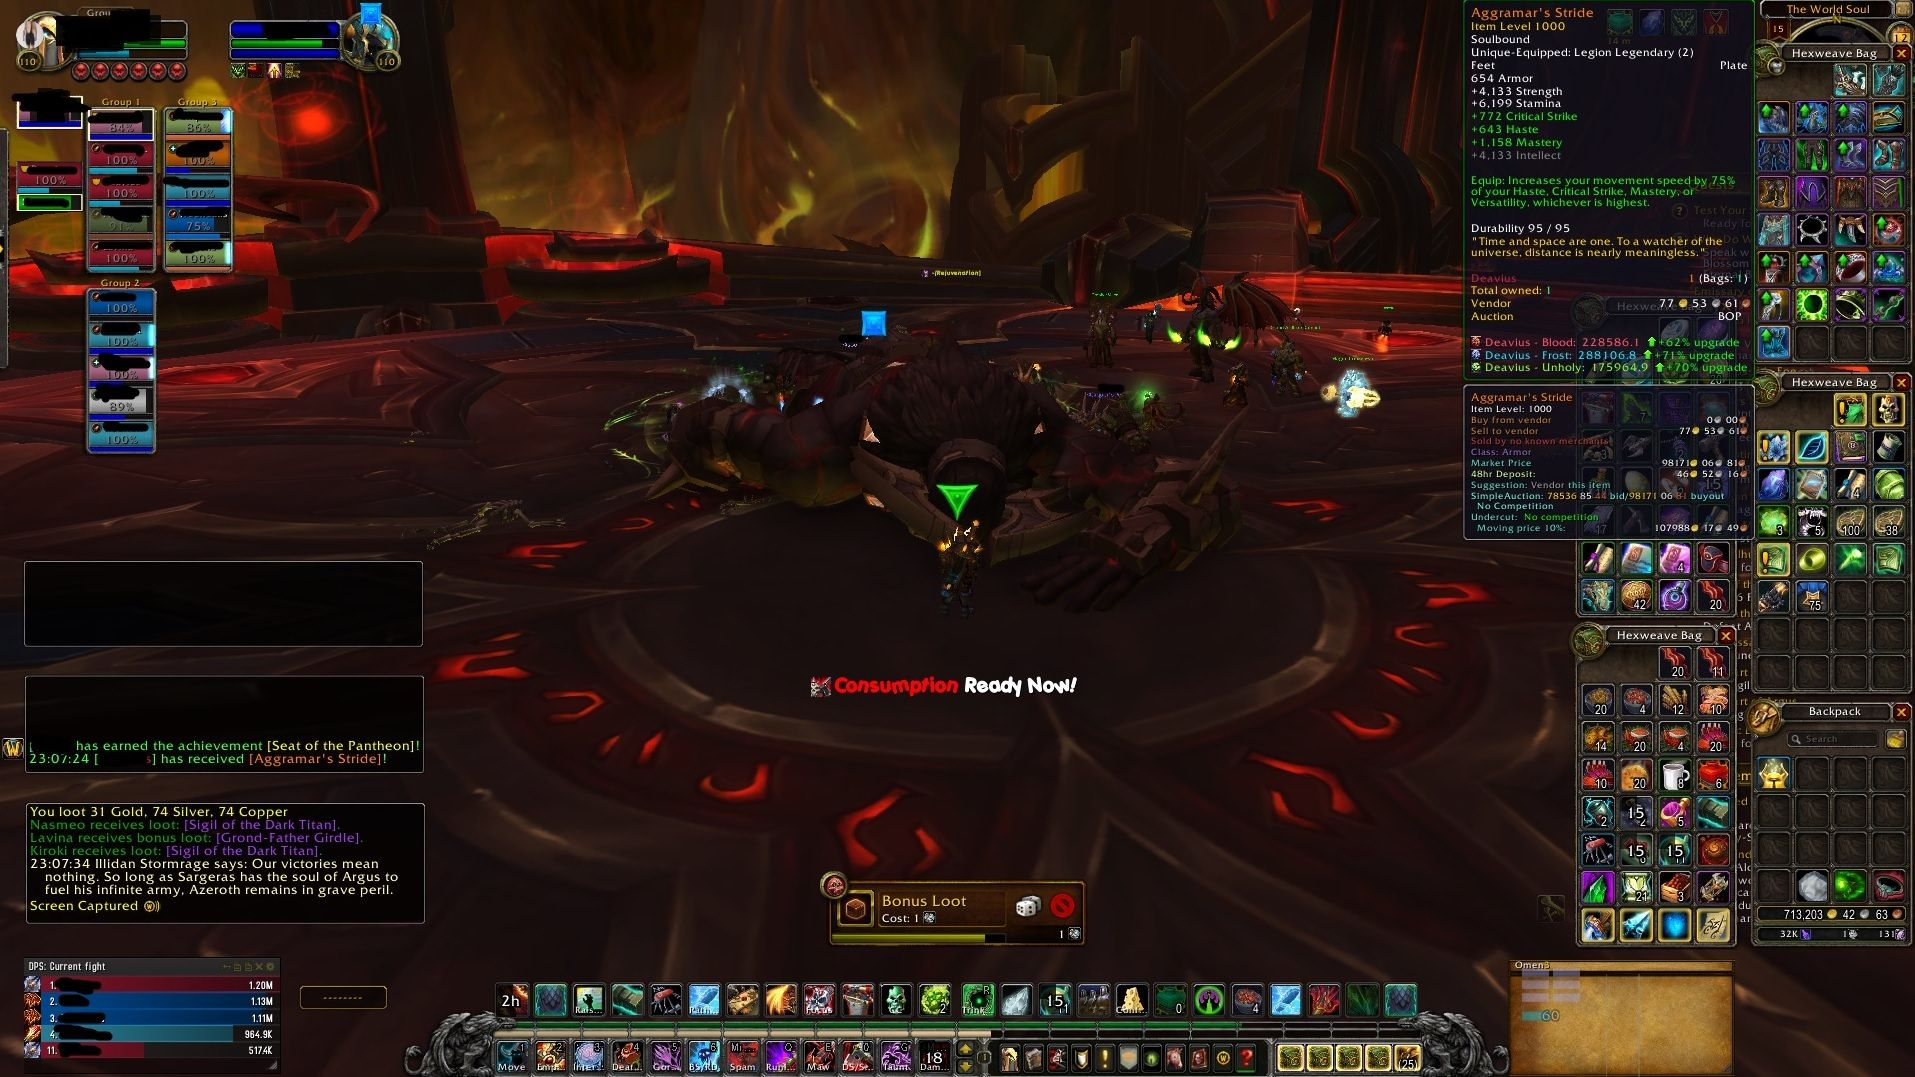 Aggramar's Stride Straight from the Source #worldofwarcraft